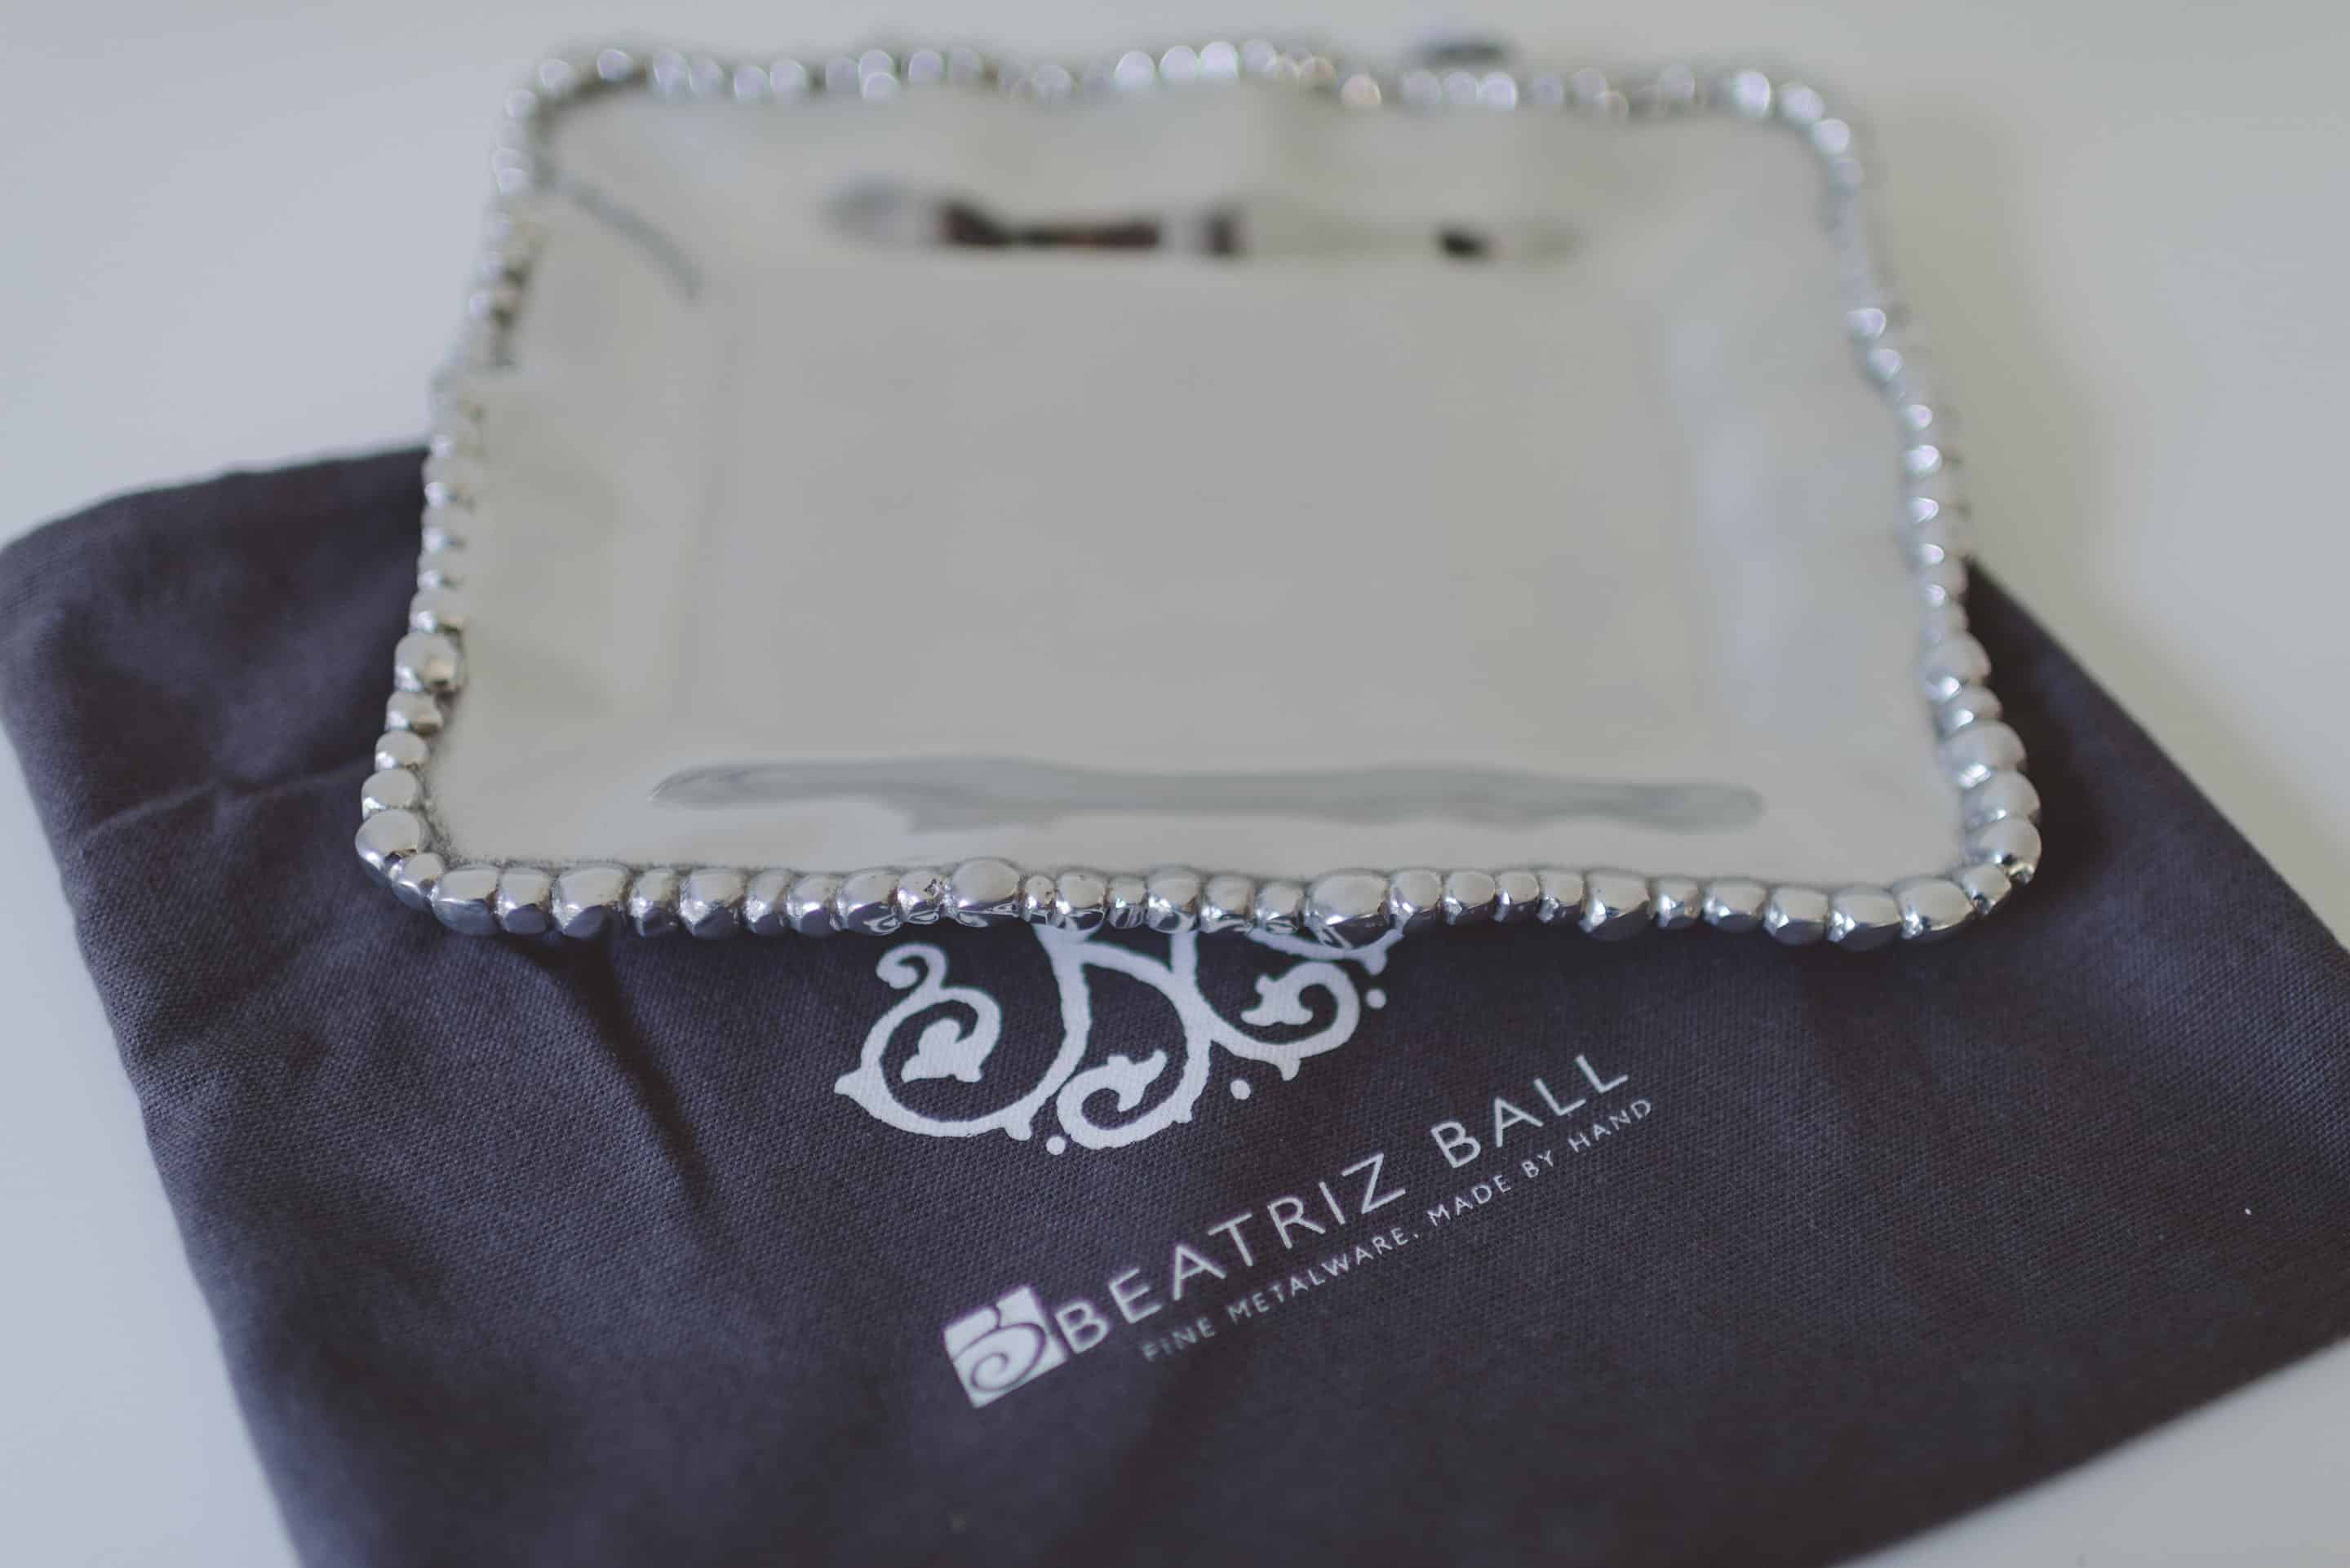 Beatriz Ball Metal Serving Tray - Dinner at Tiffani's Celebrity Crate